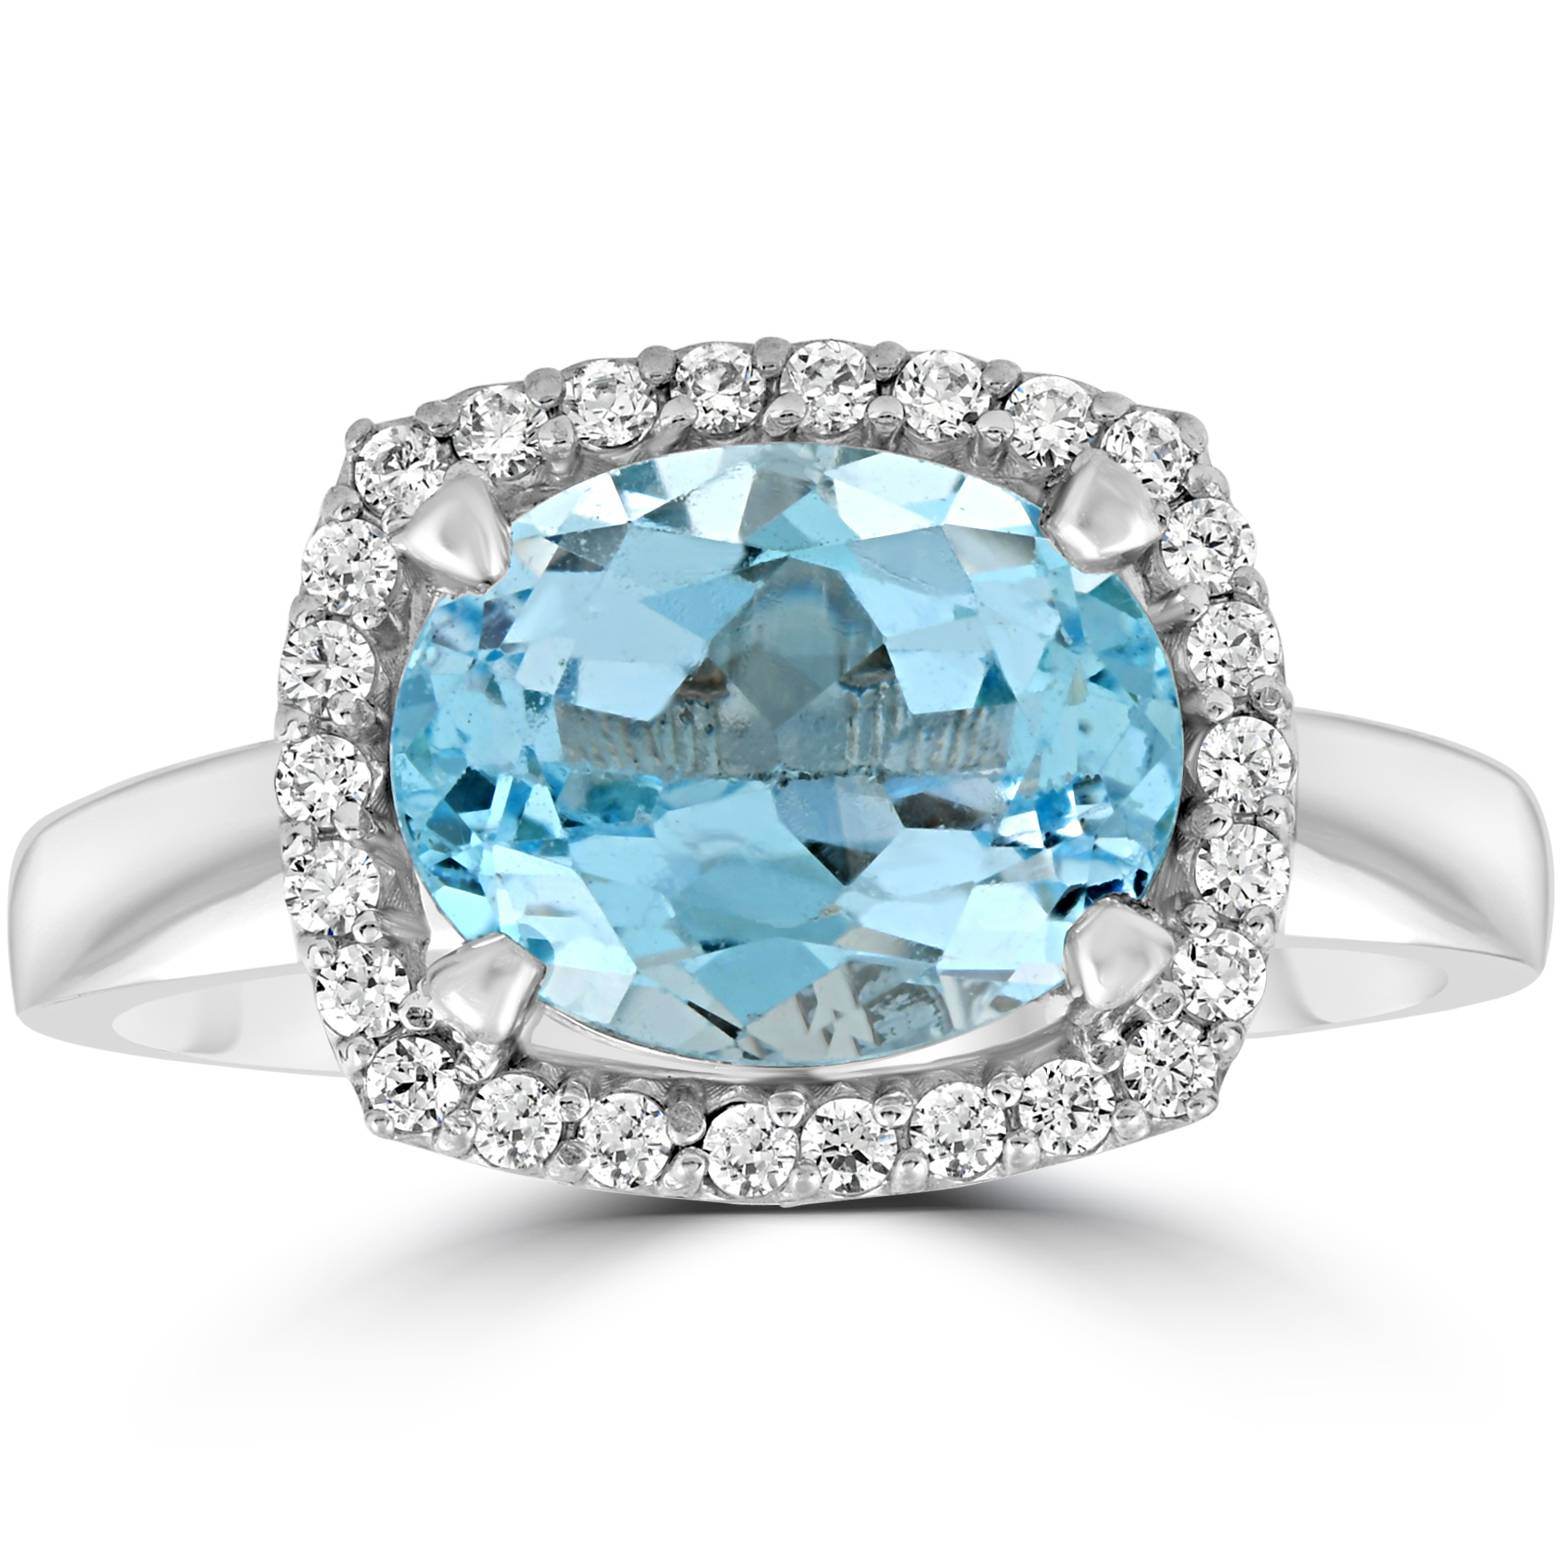 2ct oval blue topaz and halo ring 10k